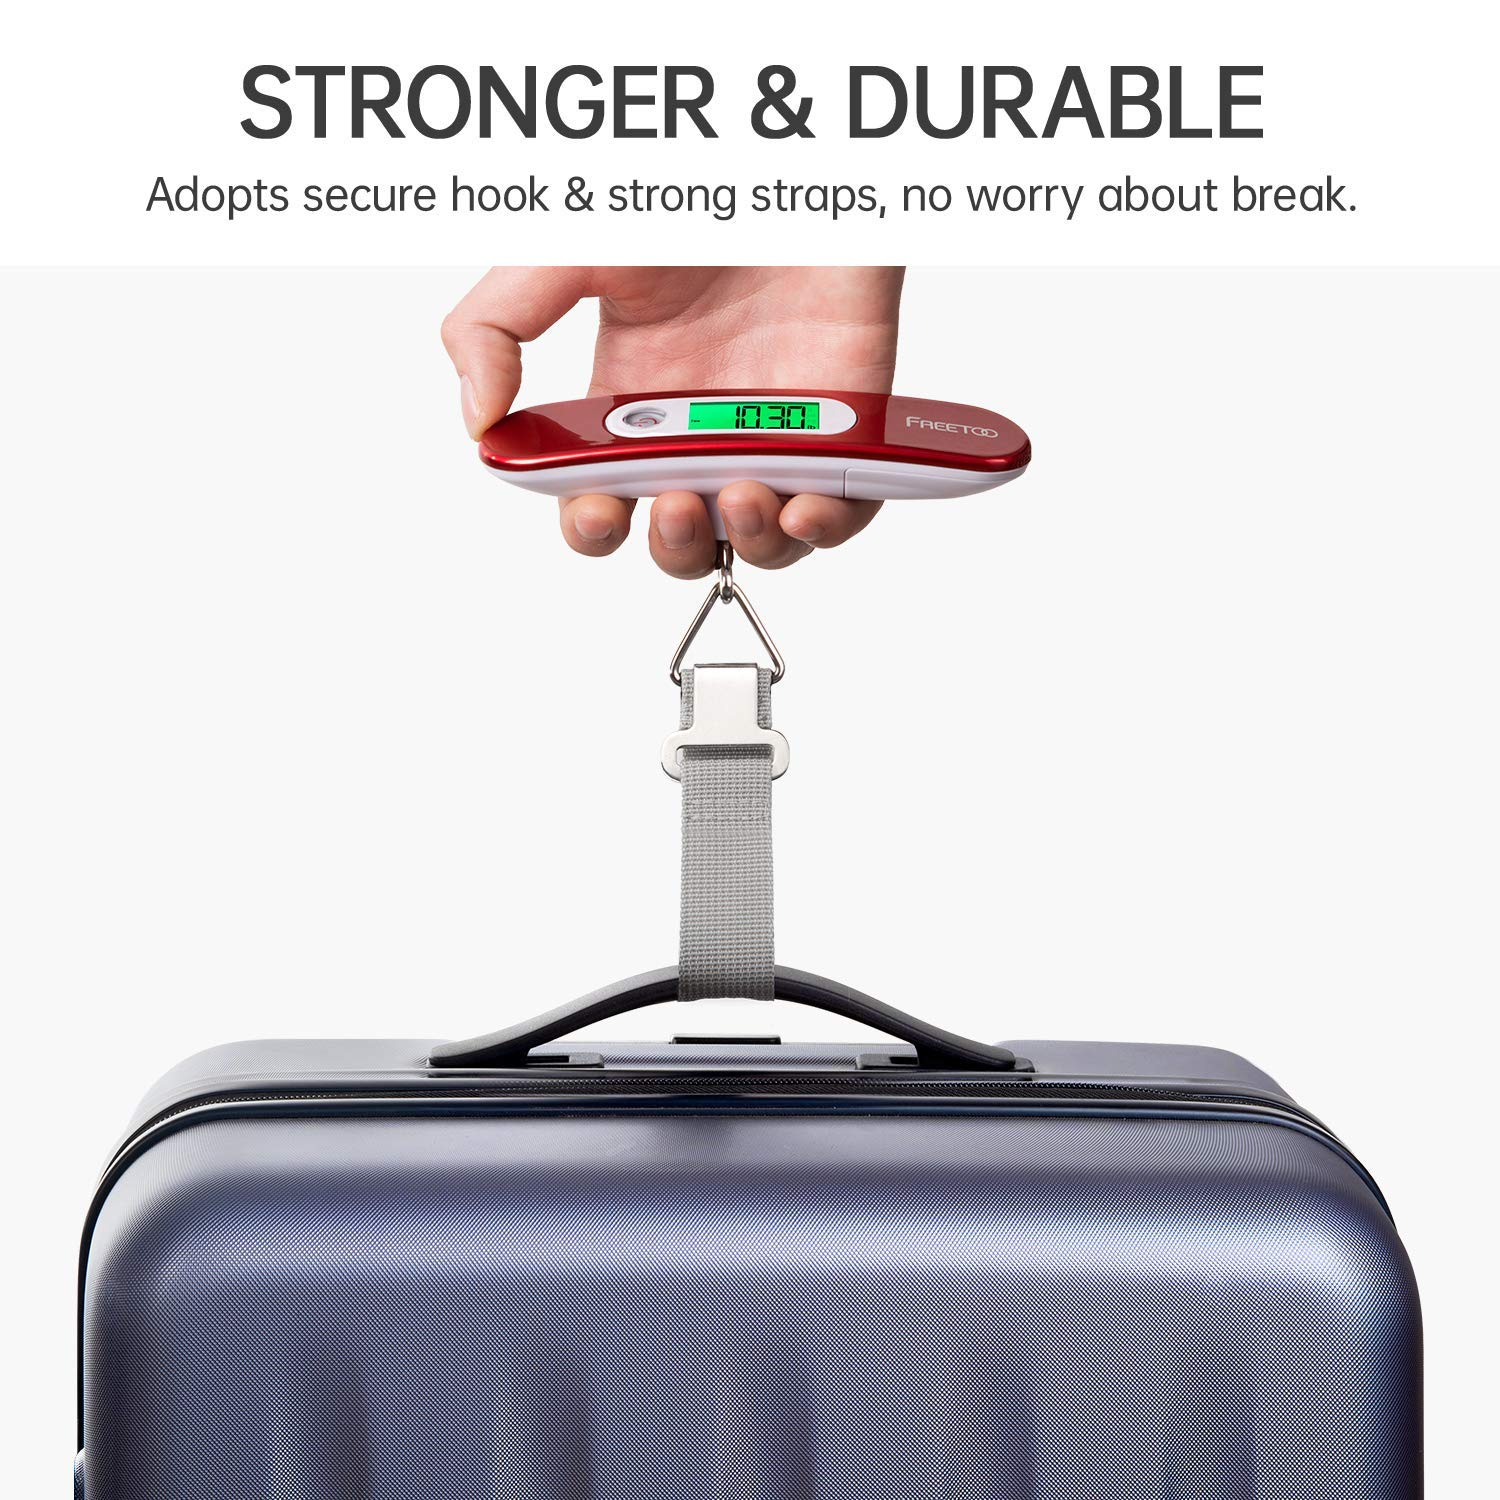 | FREETOO Luggage Scale Portable Digital Hanging Scale for Travel, Suitcase Weight Scale with Superior Piano Lacquer 110 Lb/ 50Kg Capacity, Battery Included | Luggage Scales